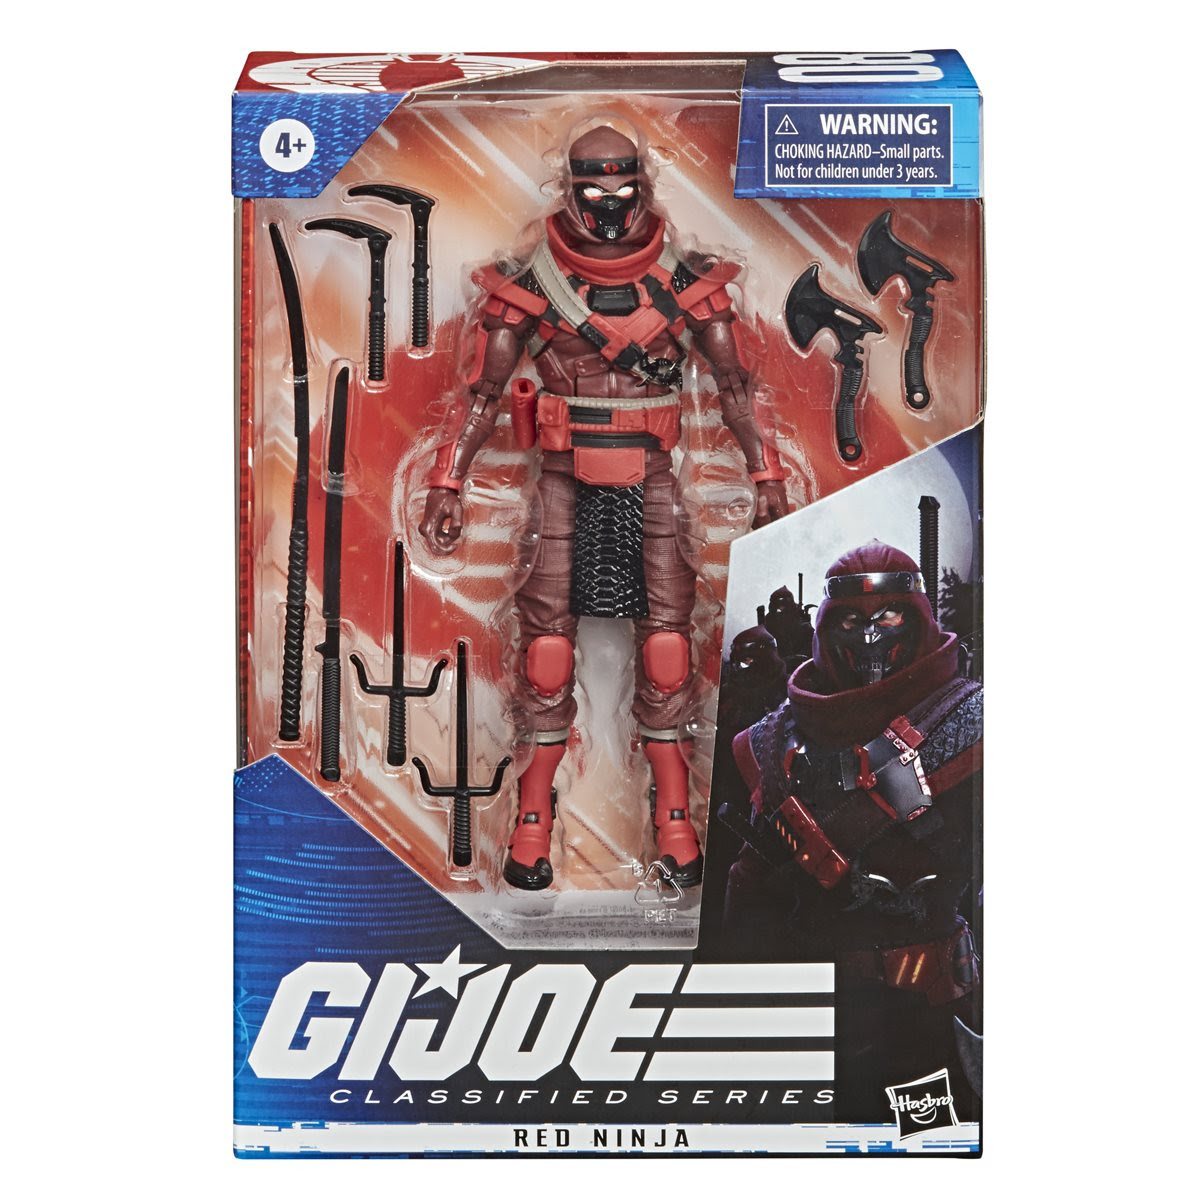 Hasbro G.I. Joe Classified Series Red Ninja Action Figure 08 Collectible Premium Toy with Multiple Accessories 6-Inch Scale with Custom Package Art